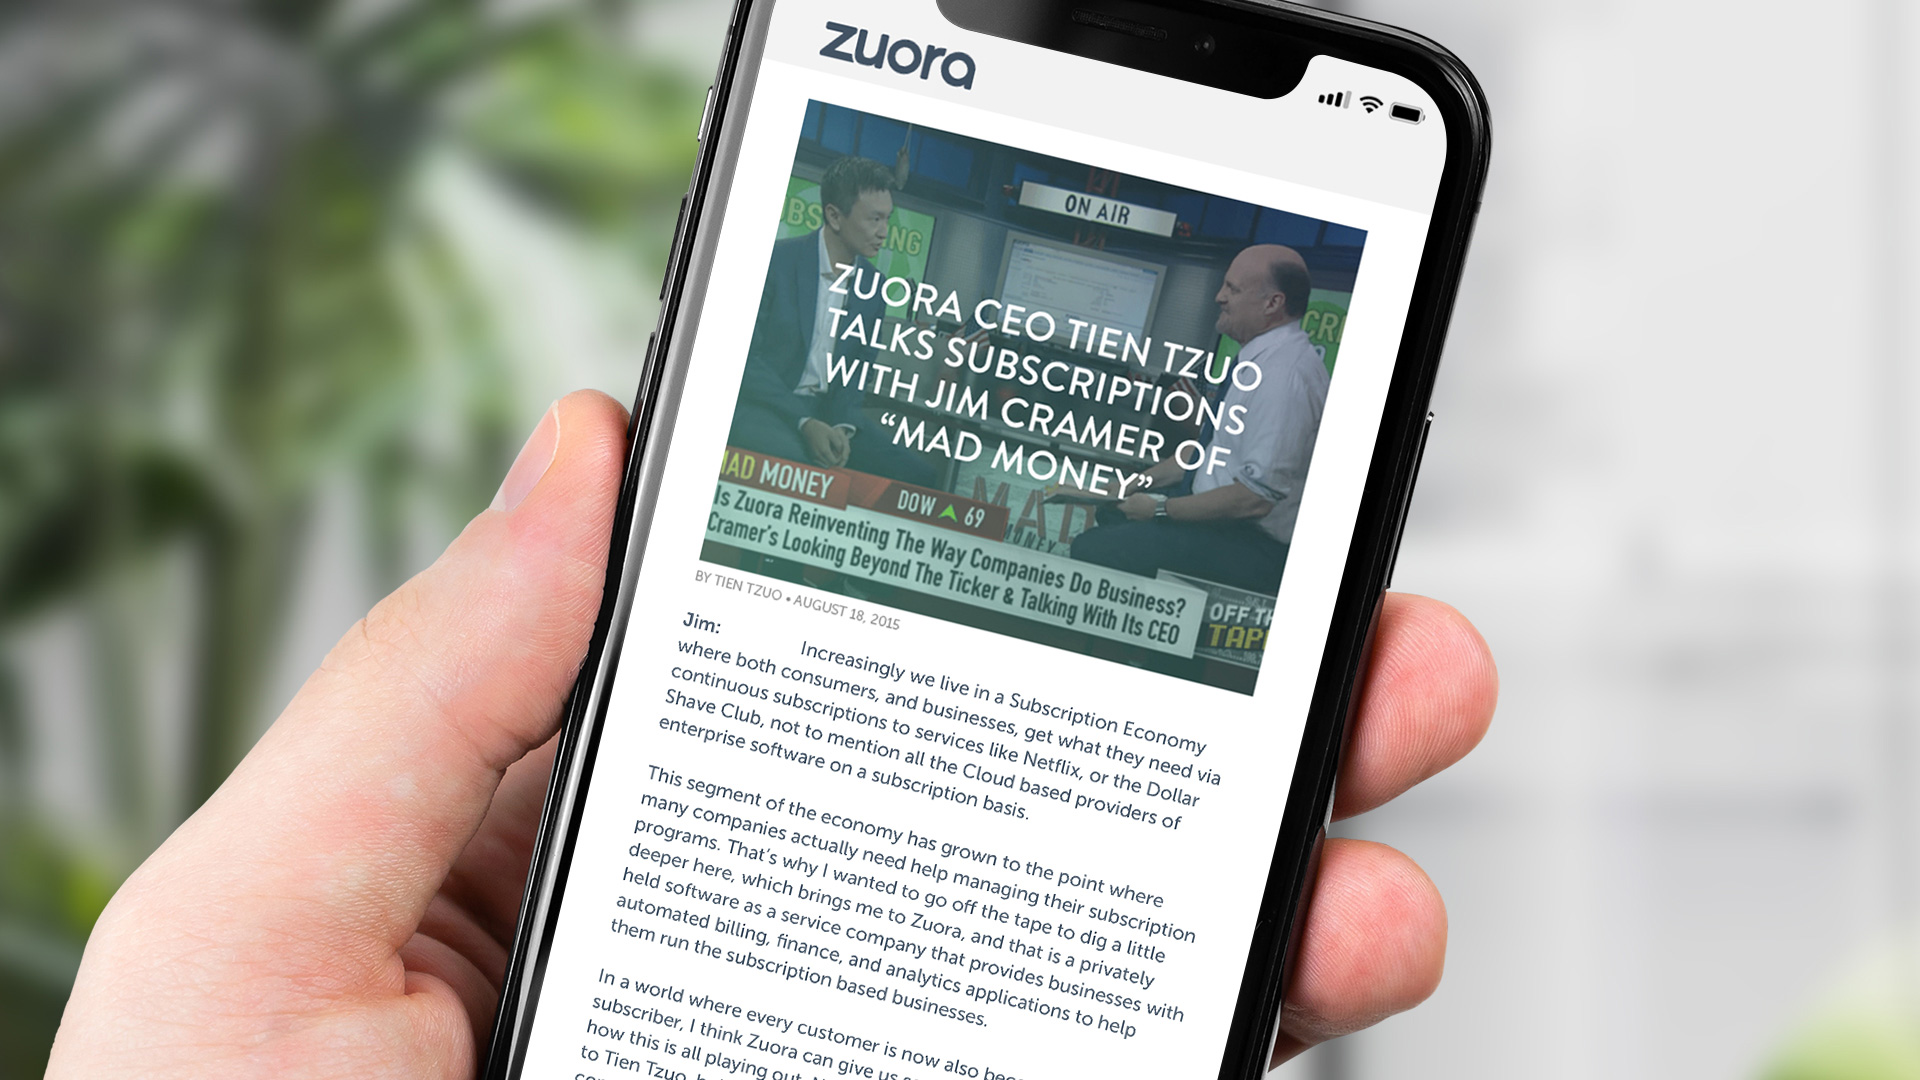 Zuora Subscription Economy